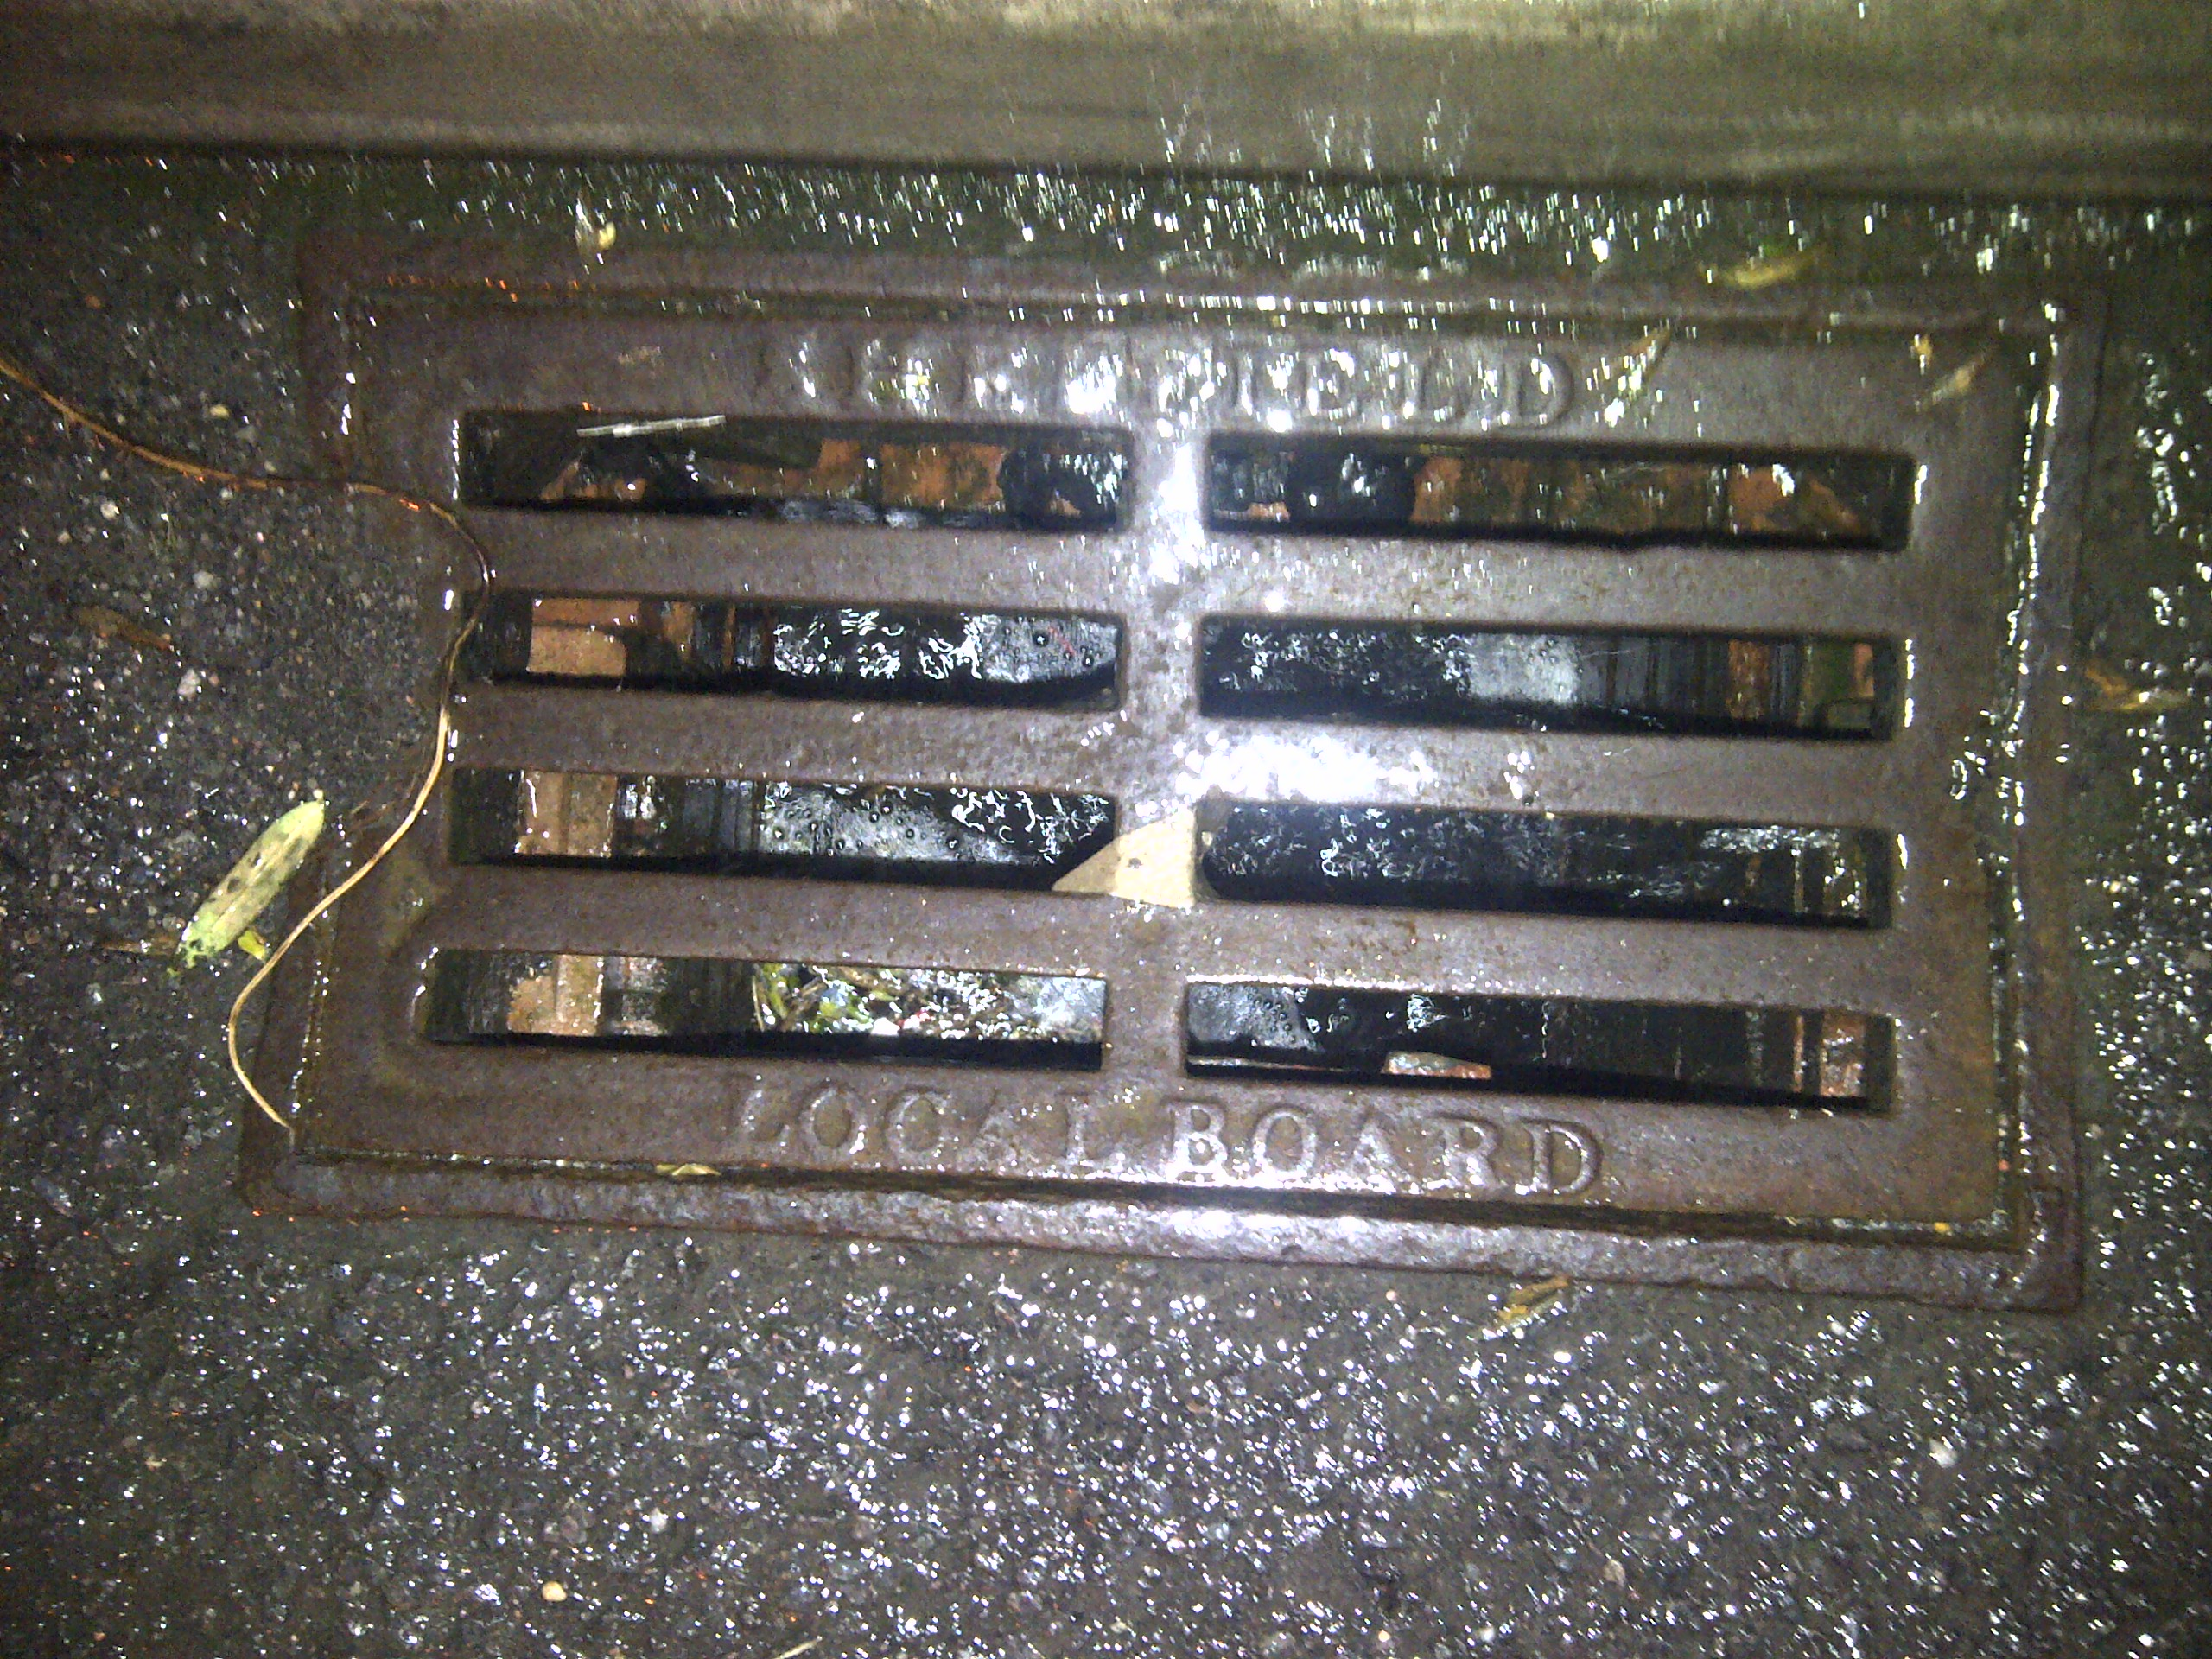 This drain cover carries the legend 'SHEFFIELD LOCAL BOARD' which apparenty referrs to the Local Board of Health, an organisation set up in sheffield in the mid 1800s.